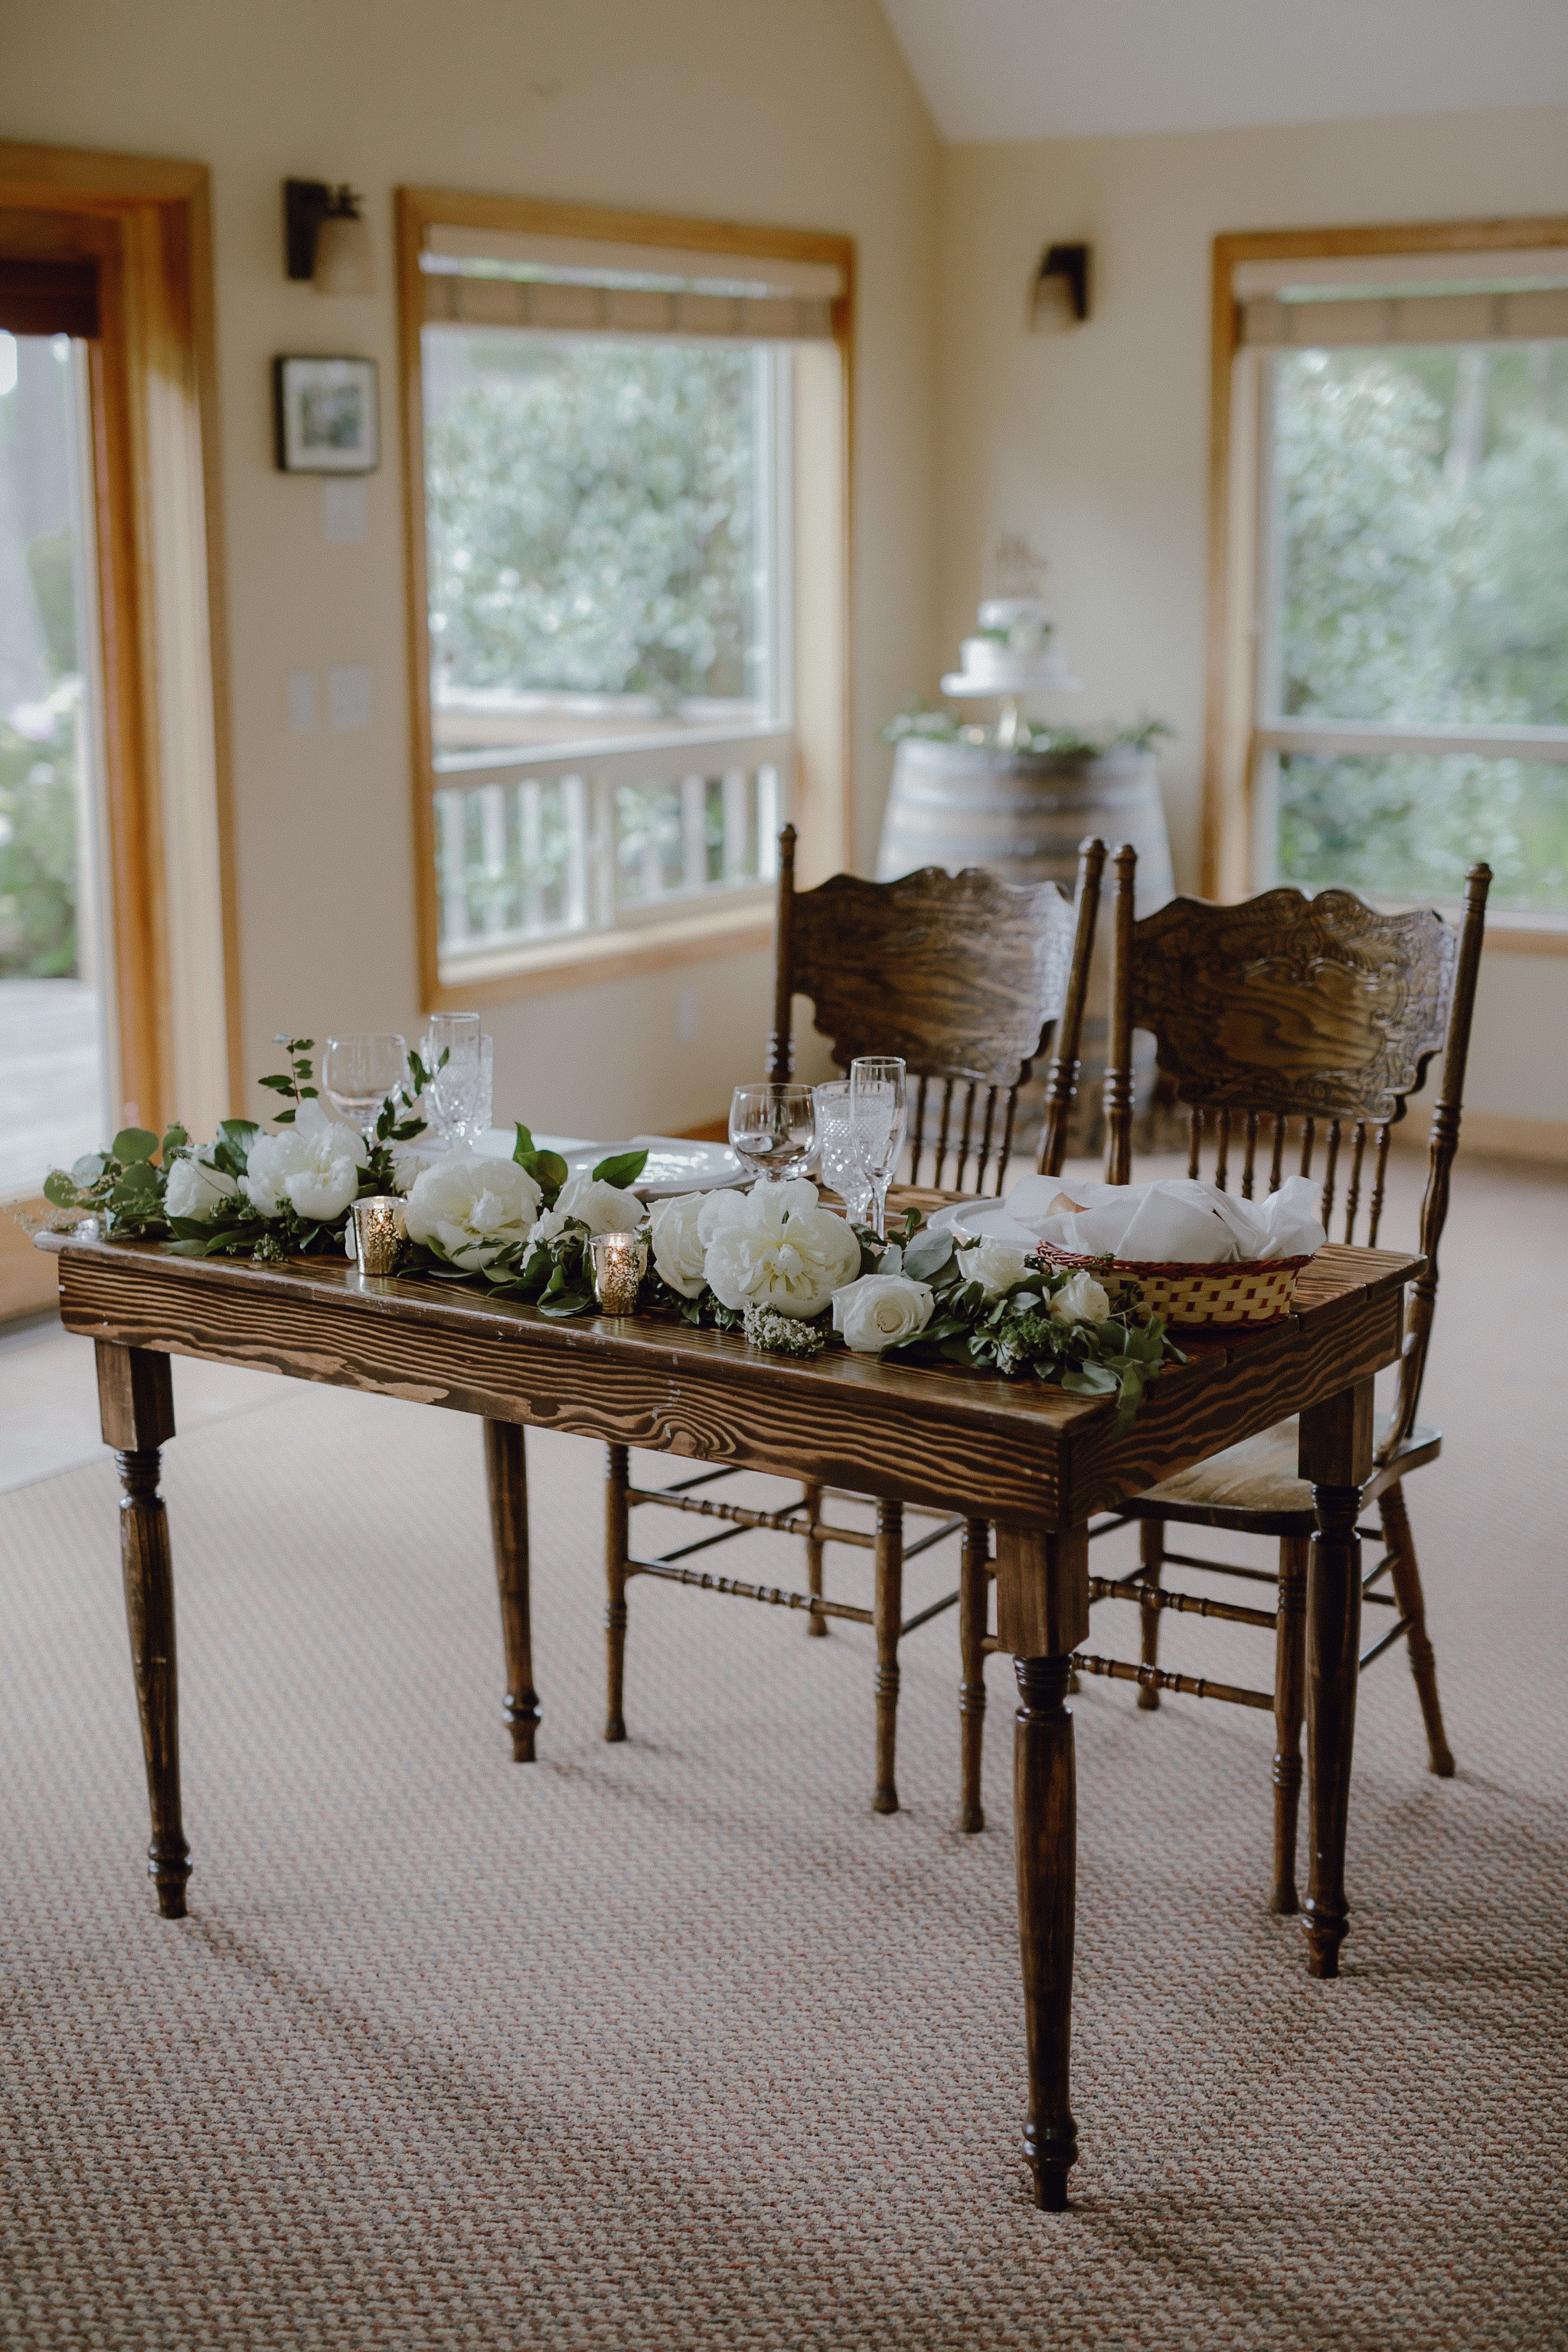 Something Borrowed in Portland provided all of the wooden tables and chairs, wine barrels, and modern place settings and flatware. It was the perfect mix of rustic, modern, and elegant.